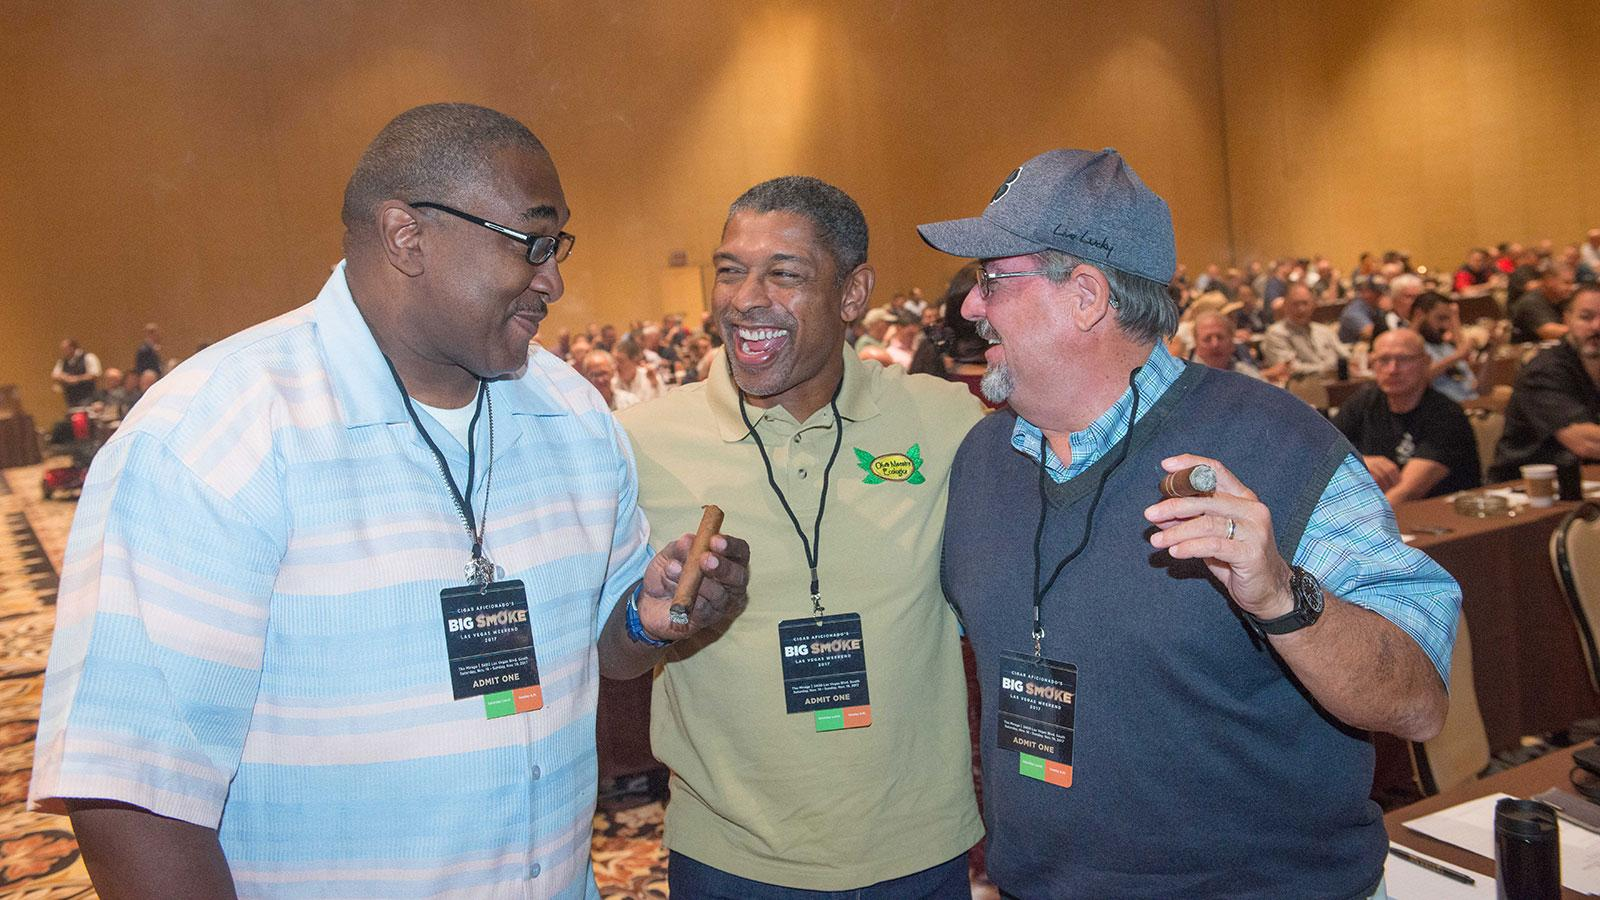 Walter Frazier, Ted Hughes and David Boggs share a laugh in between seminars.